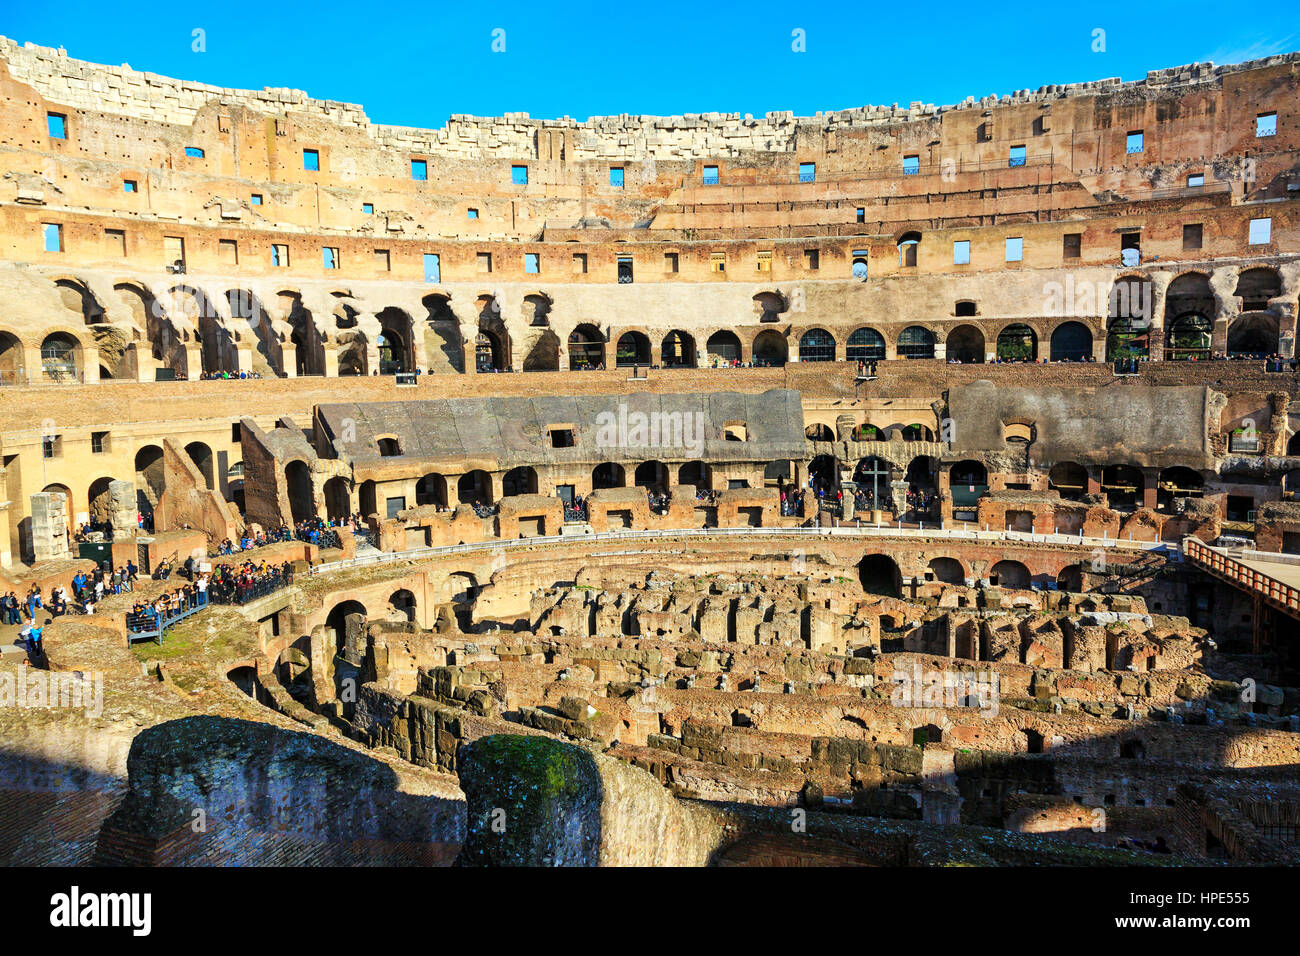 Interior of the 1st century Flaviam amphitheatre known as the Colosseum, Rome, Italy - Stock Image